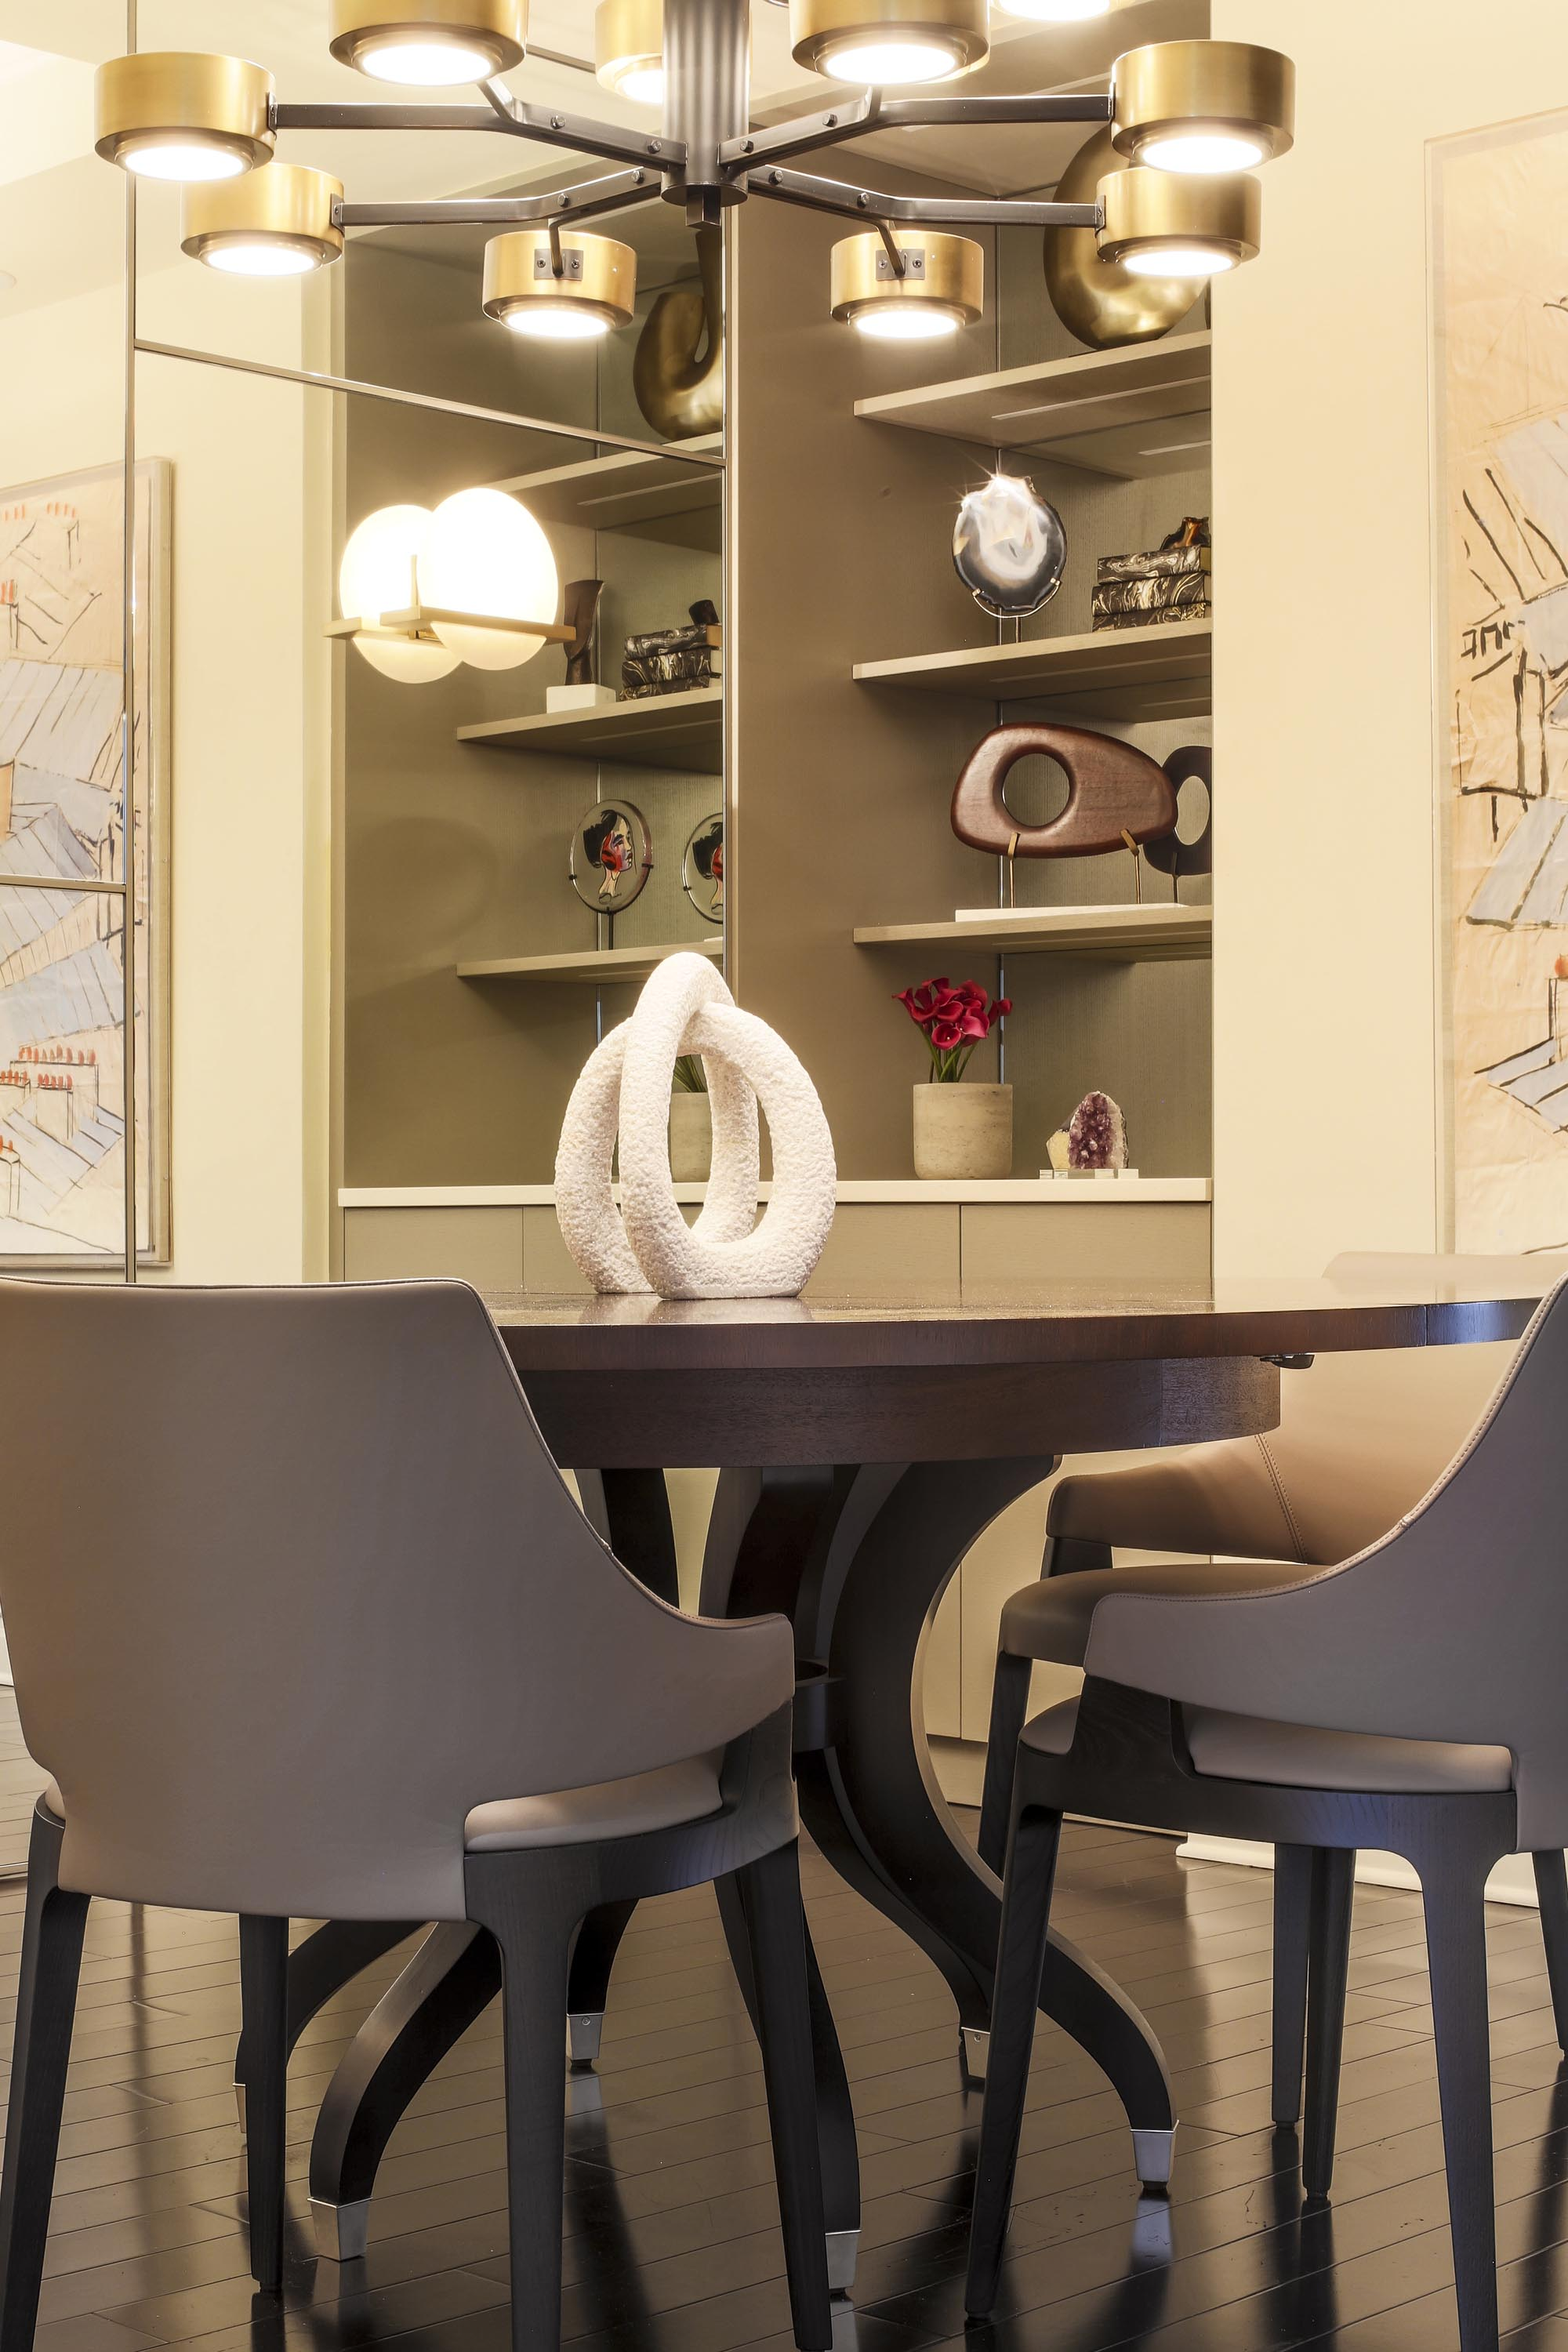 Dining room with built-in cabinetry, round table, chairs and a custom chandelier